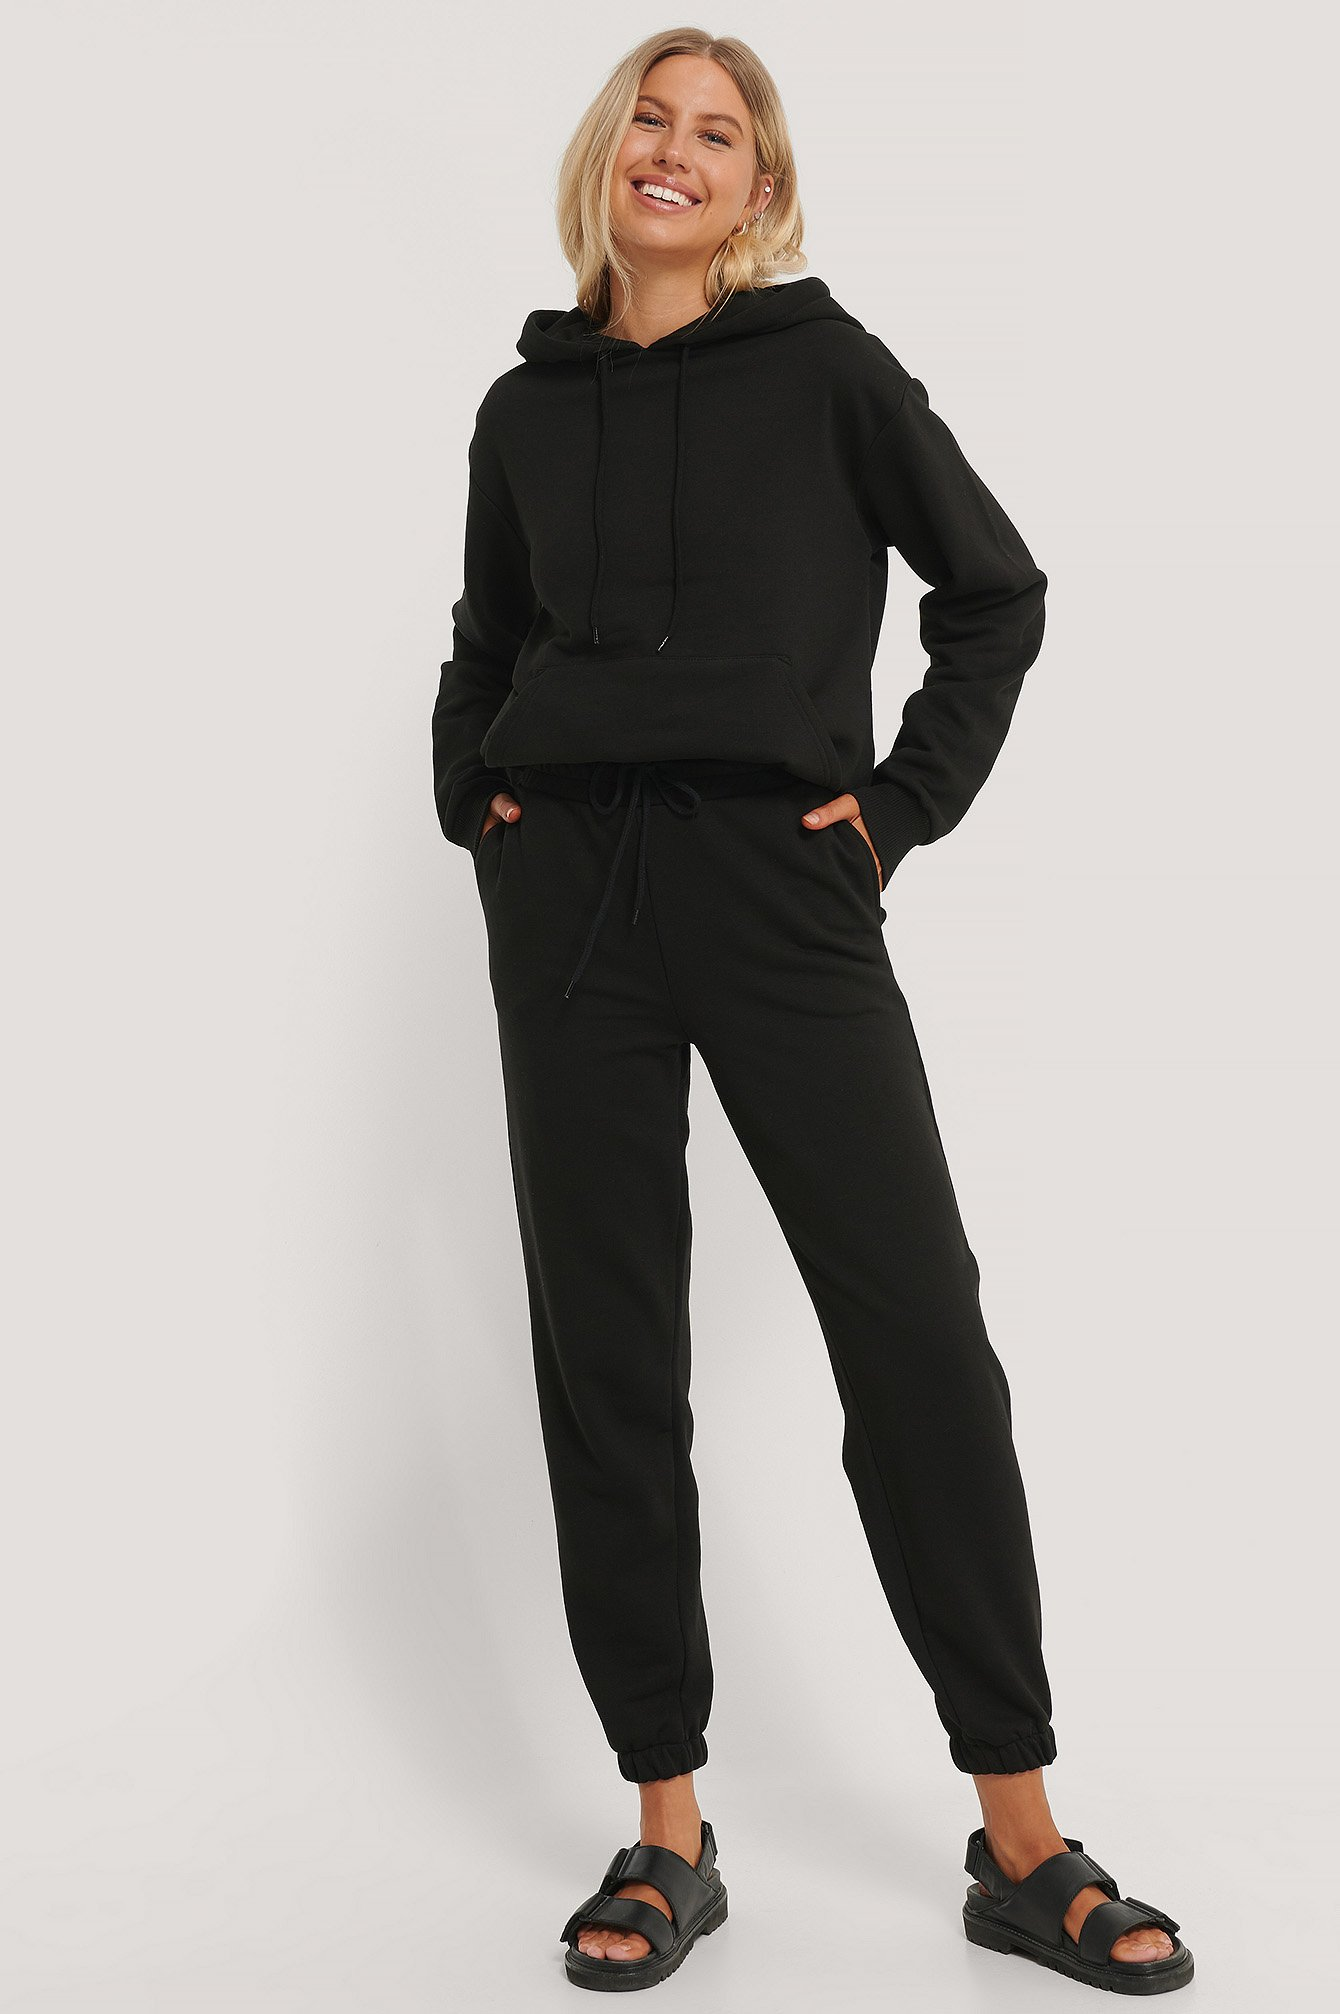 Black Organic Brushed Drawstring Sweatpants